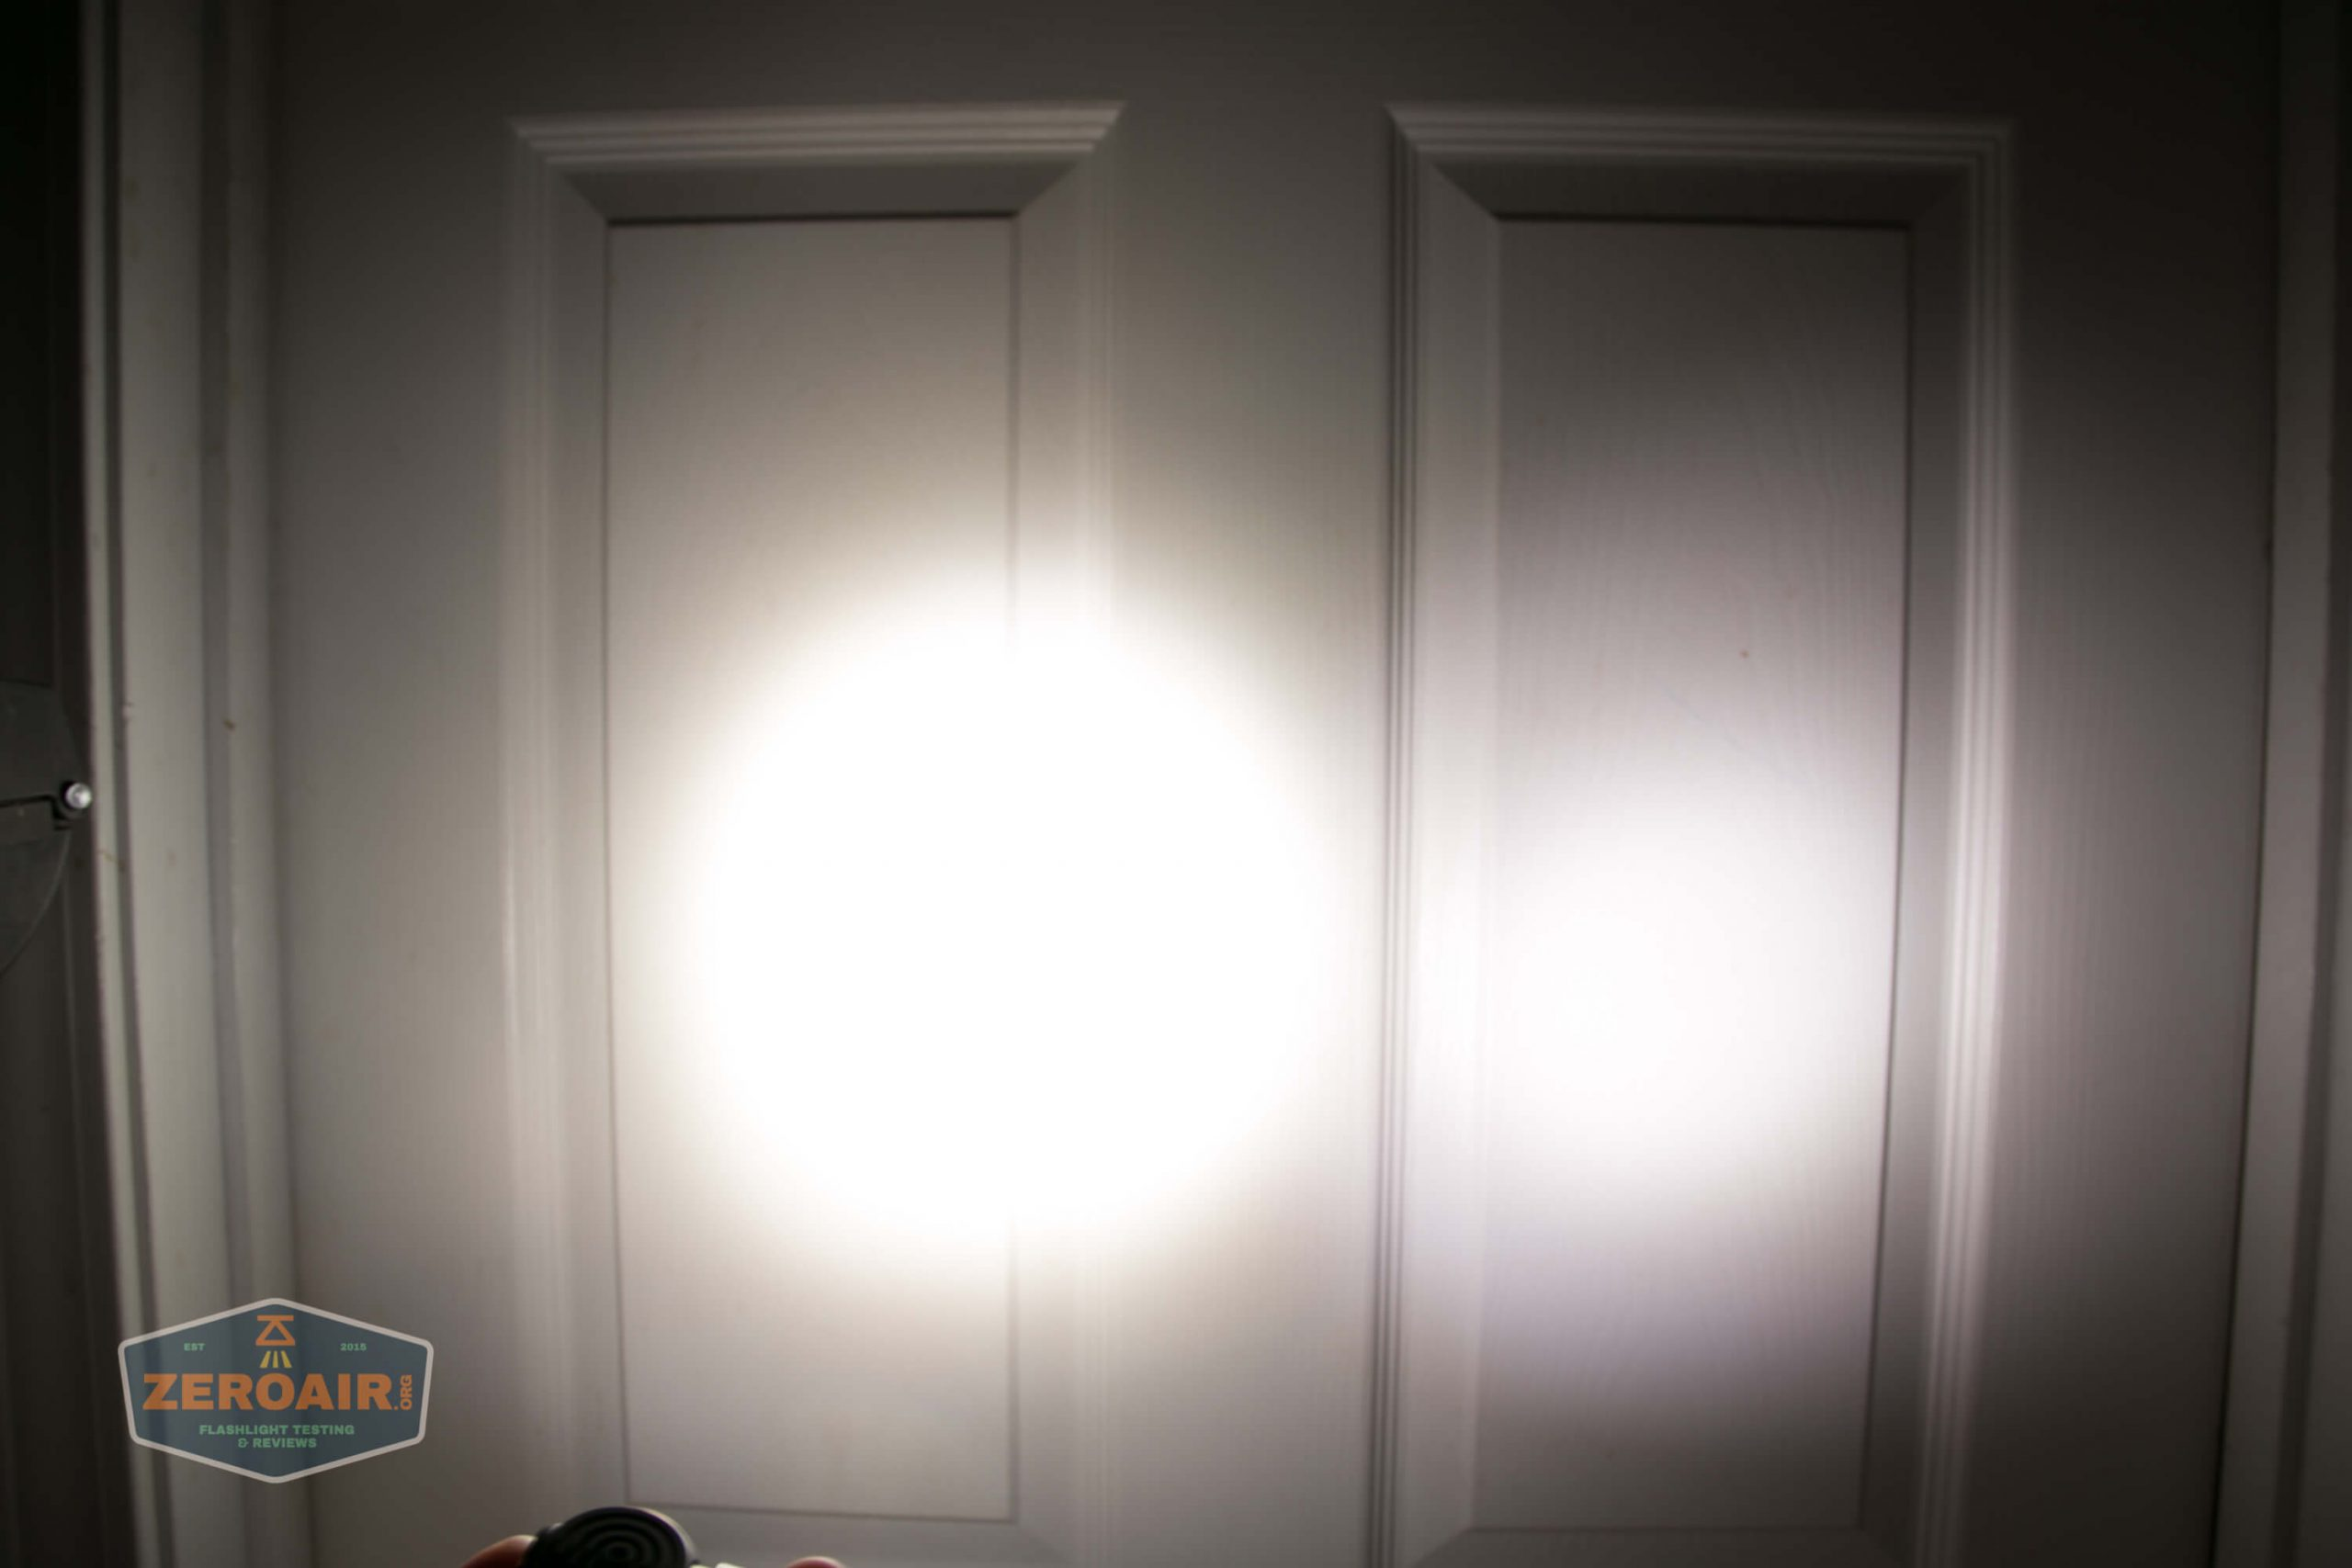 acebeam h17 nichia 18350 beamshot door medium2